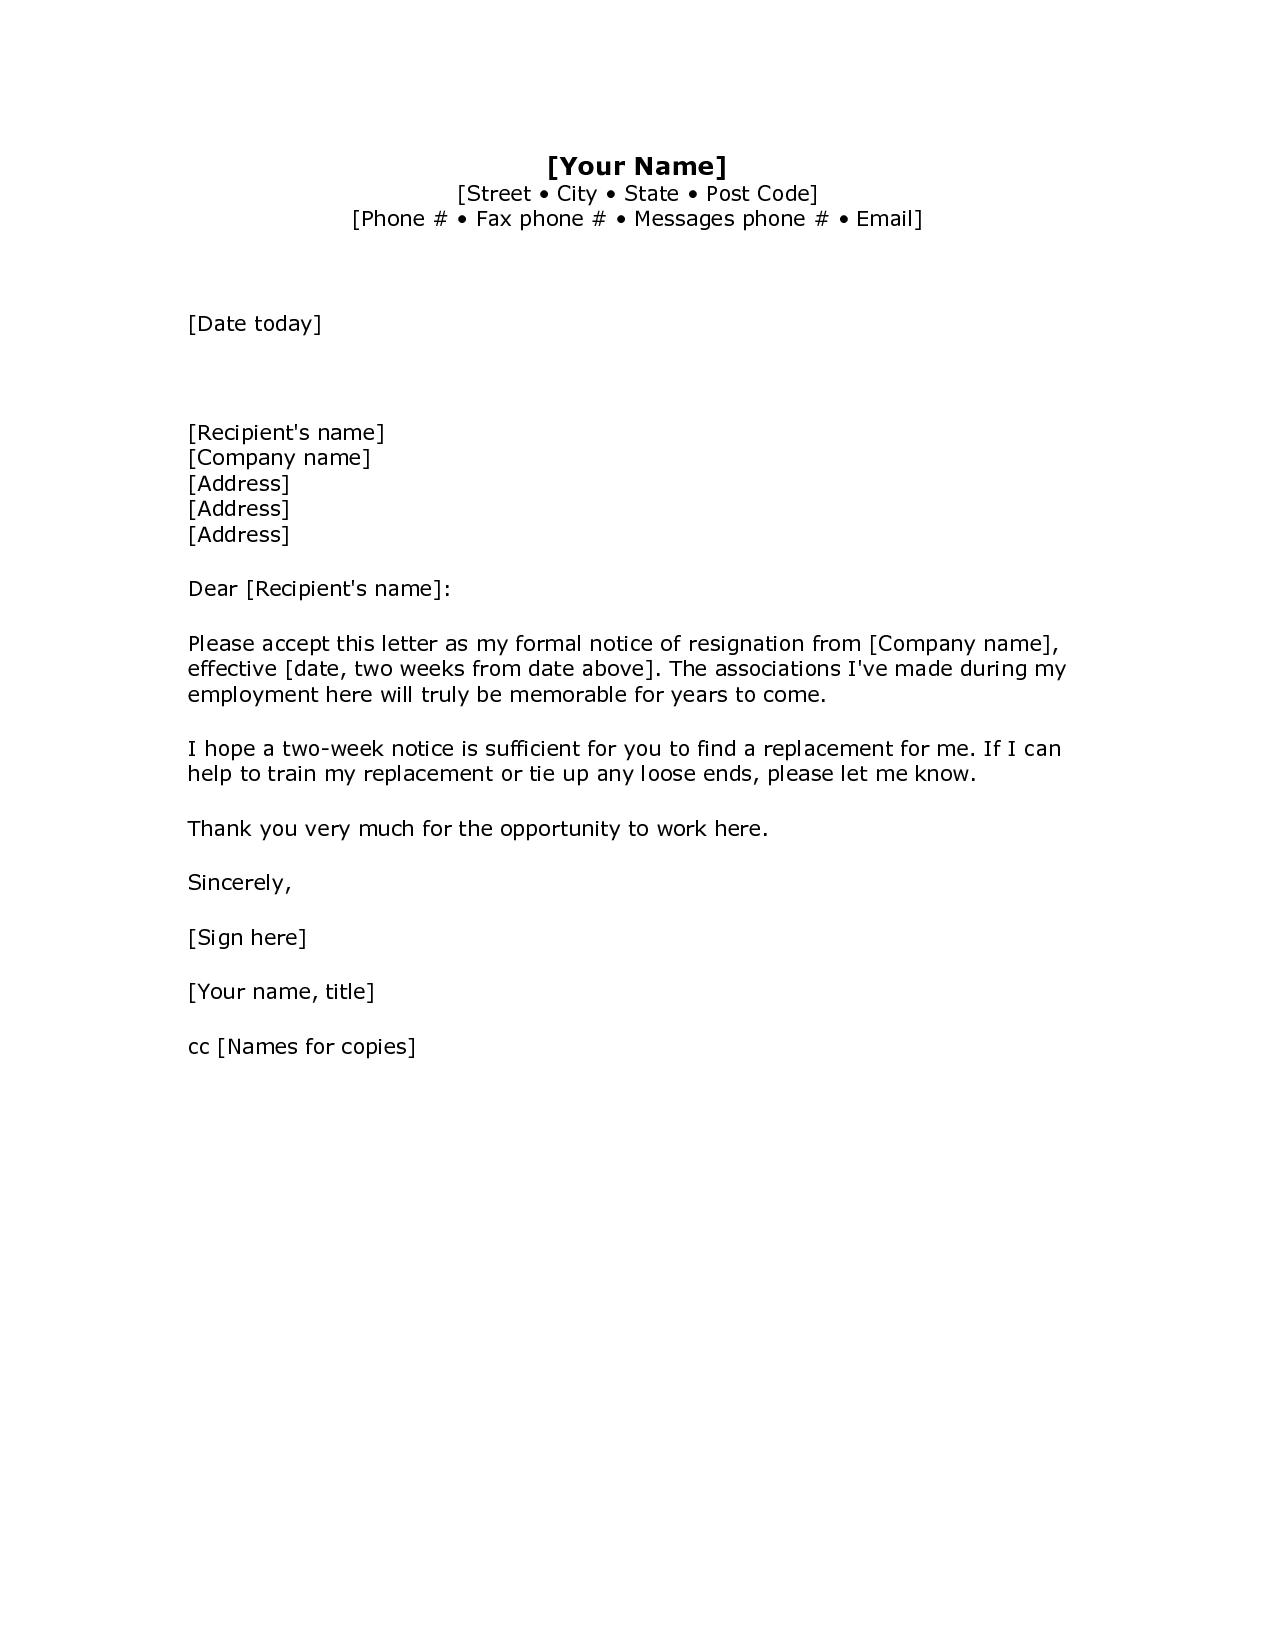 i quit letter template Collection-2 Weeks Notice Letter Resignation Letter Week Notice Words HDWriting A Letter Resignation Email Letter Sample 20-k